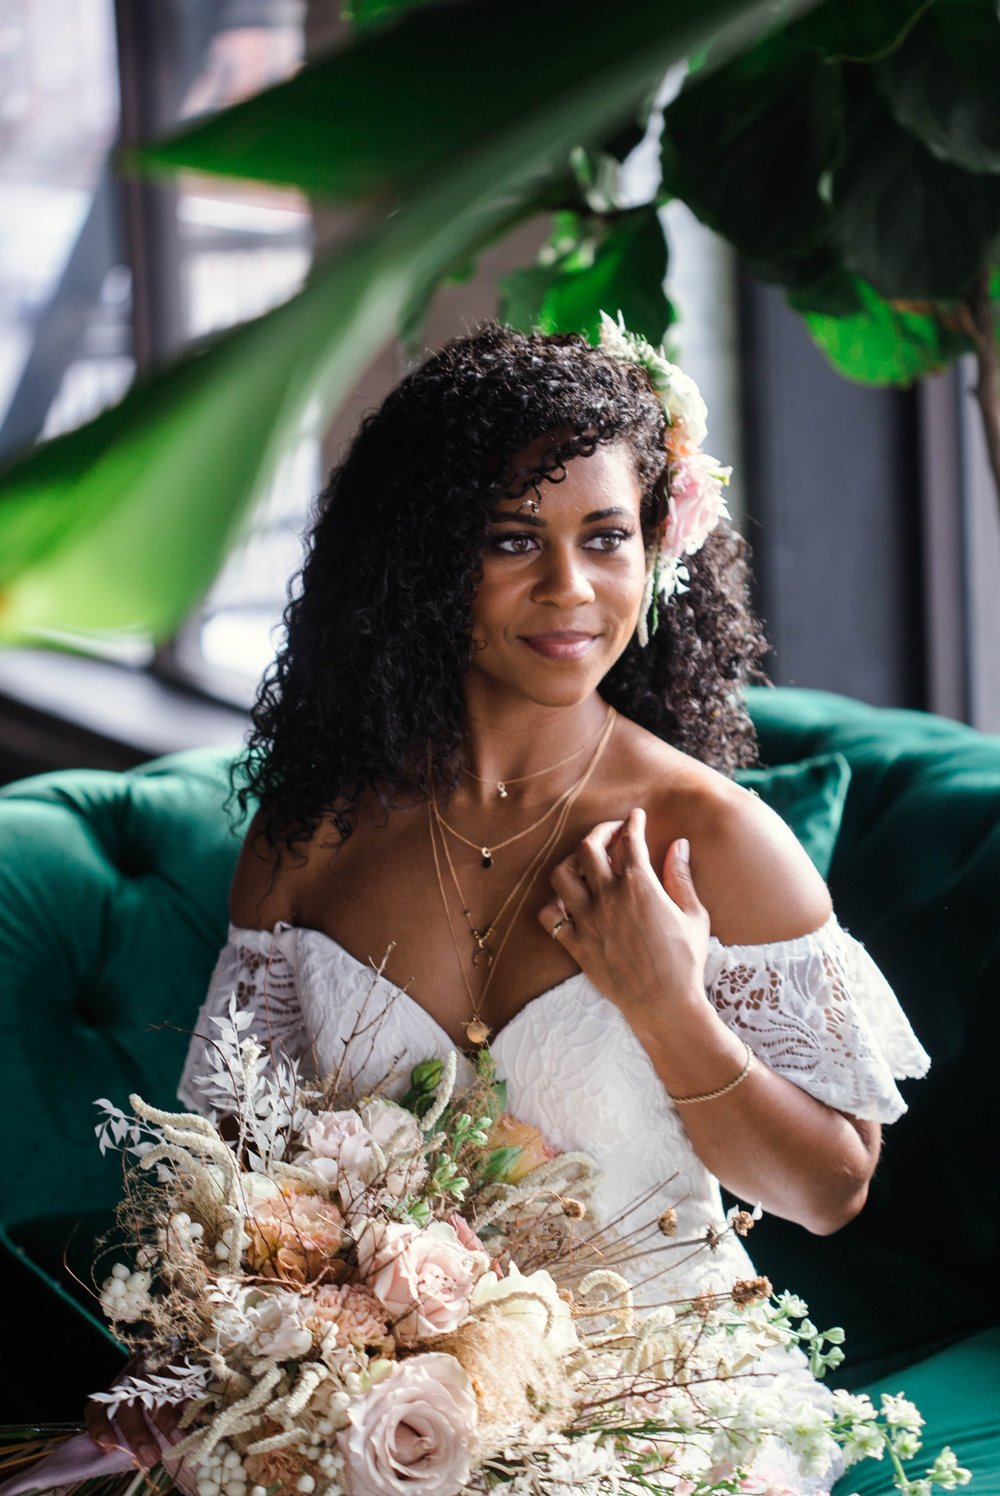 Indoor Natural light portrait of a black bride in a boho wedding dress sitting on an emerald tufted sofa - flowers in natural african american hair - oahu hawaii wedding photographer